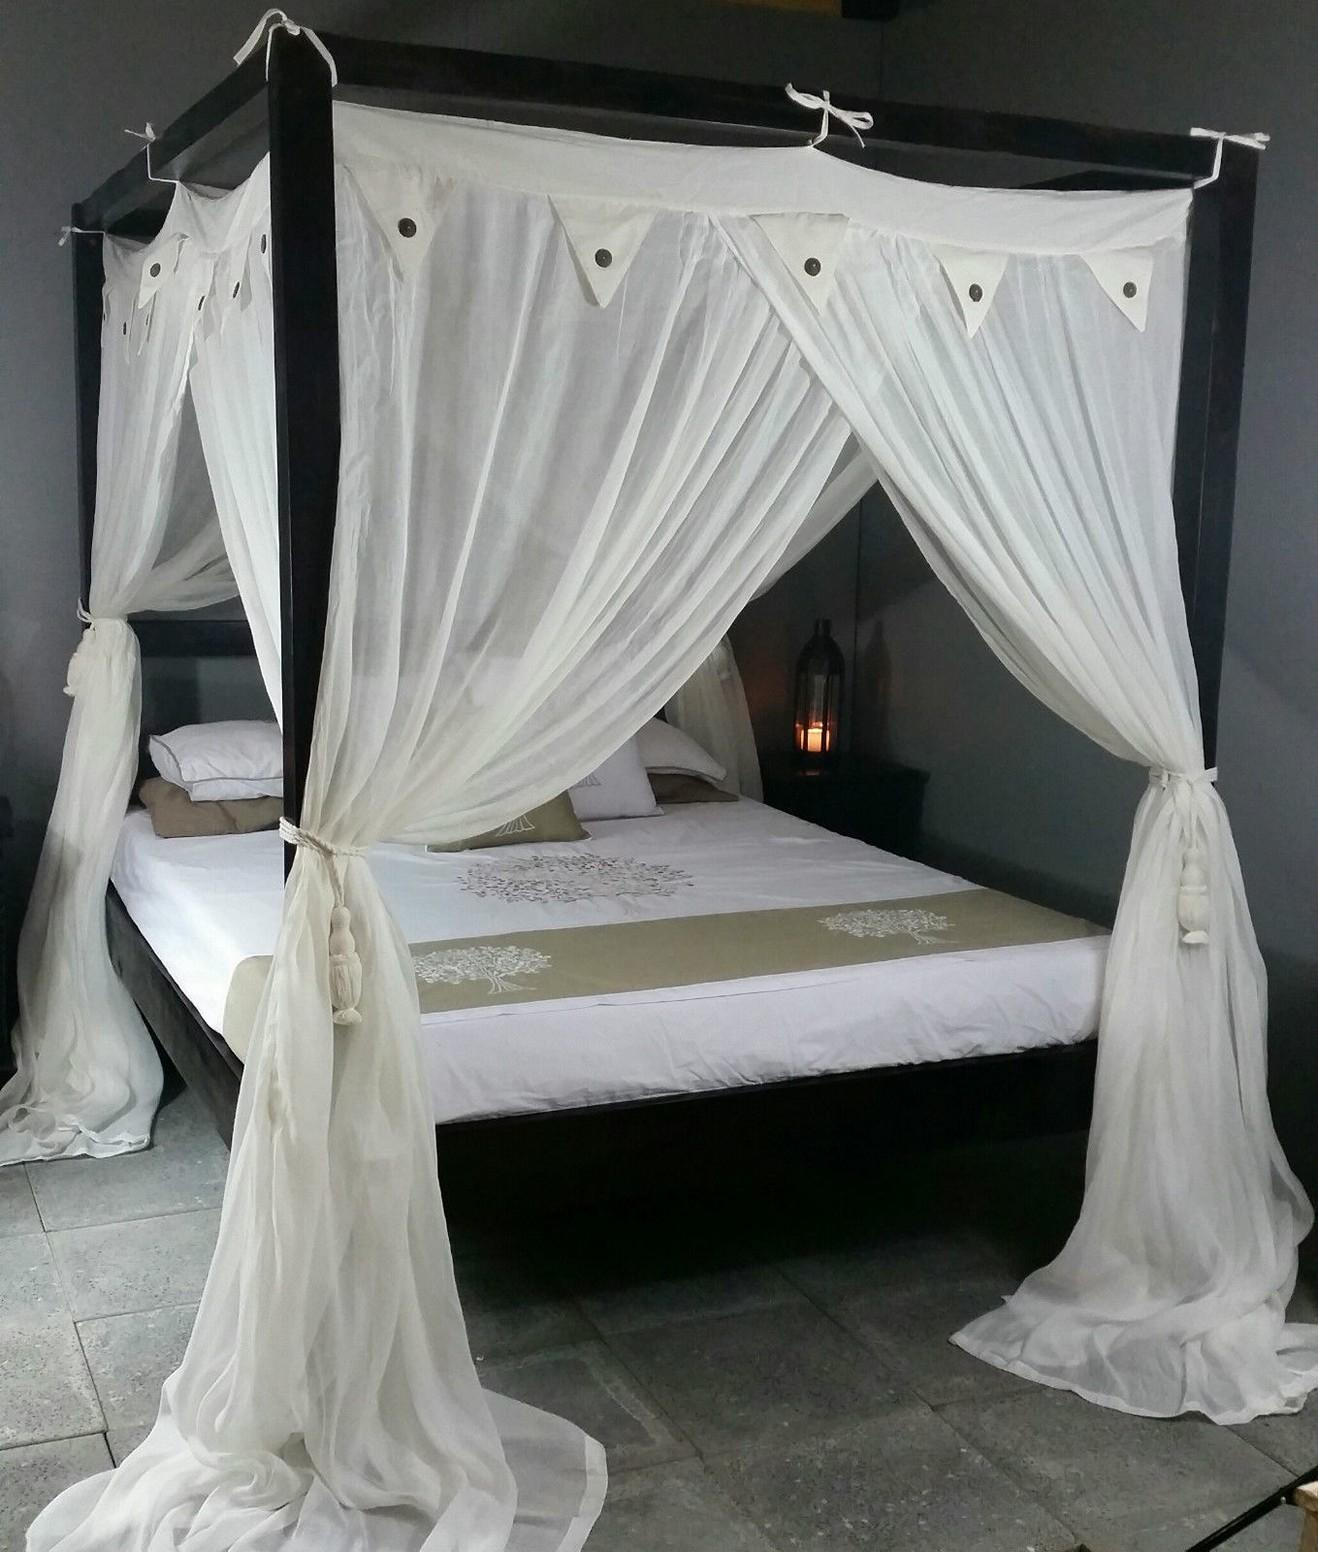 Diy Bed Canopy Make Magical